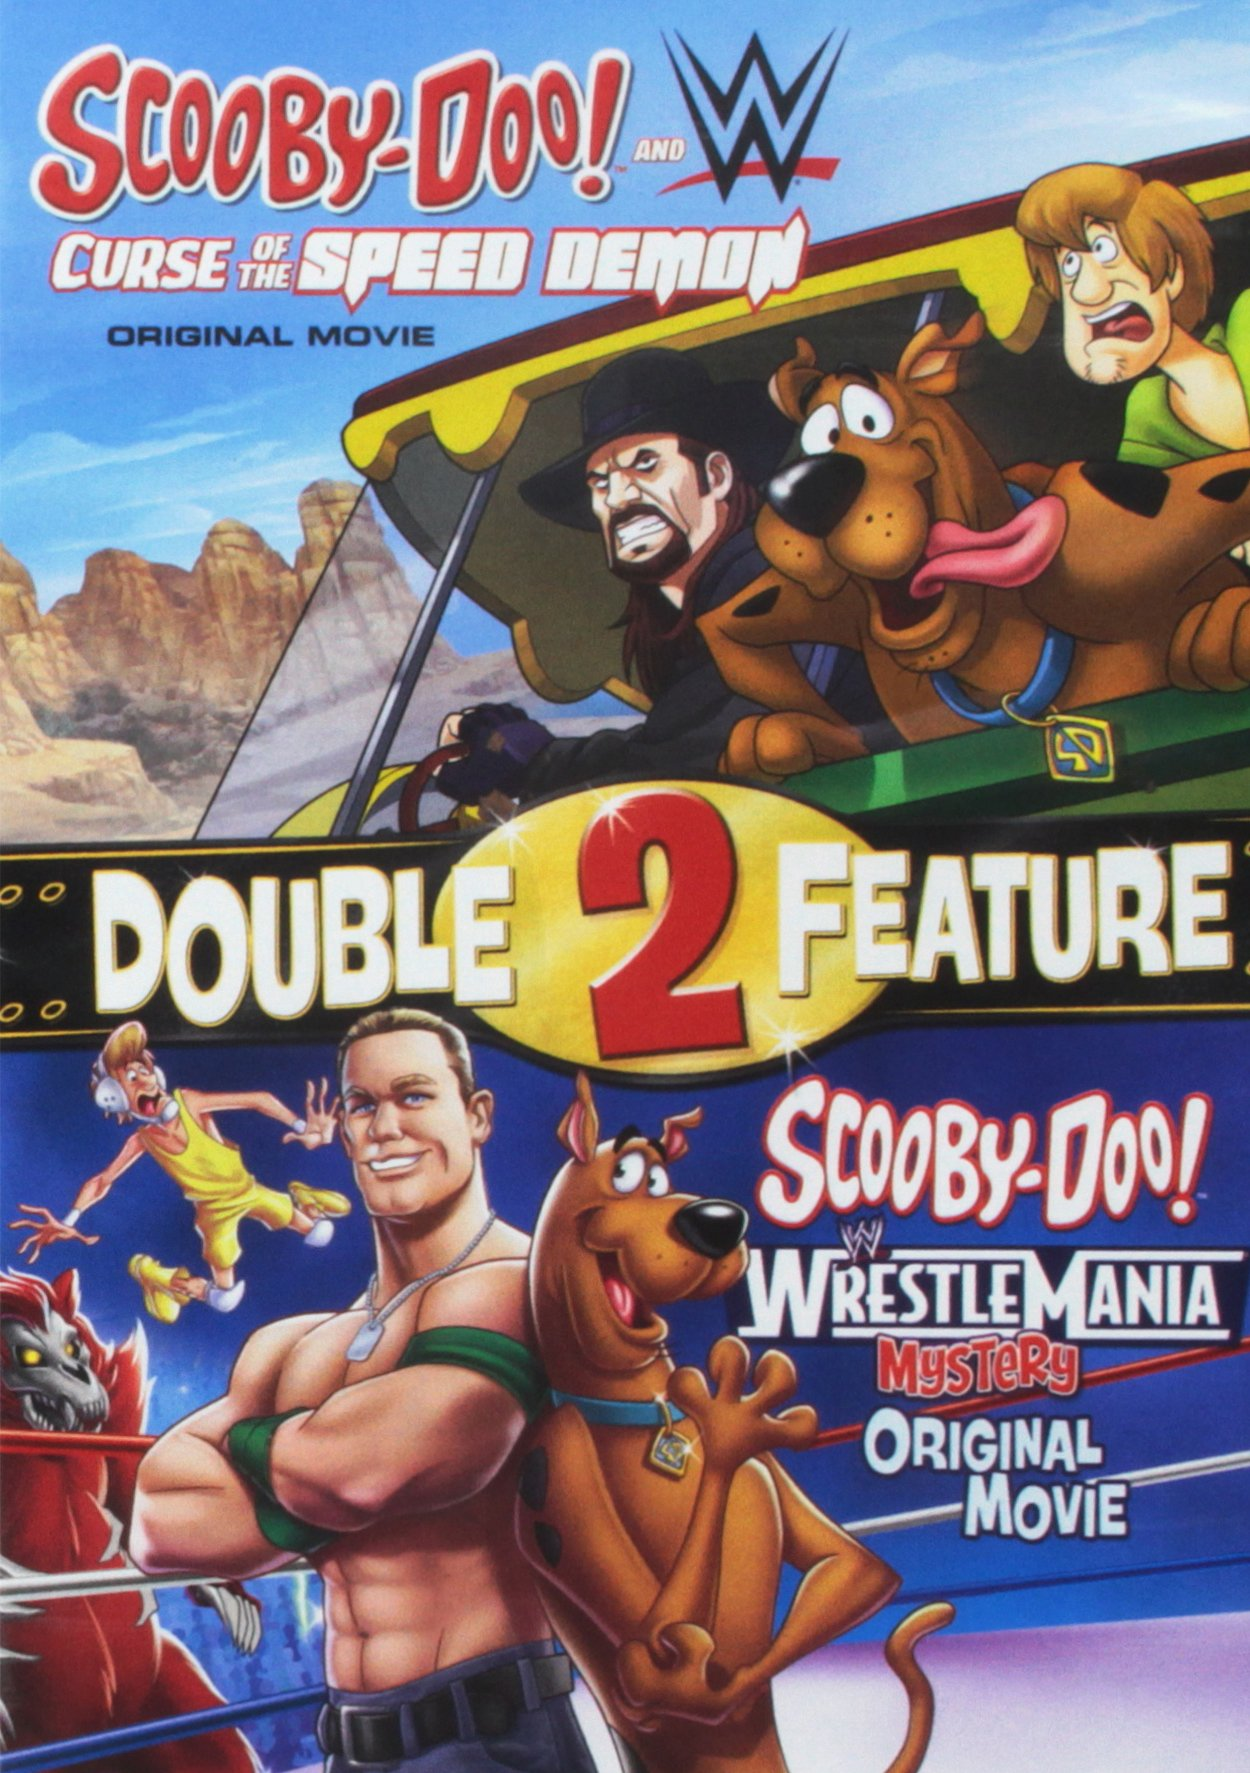 DVD : Scooby / Wwe: Curse of the Speed Demon and Scooby / Wwe WrestlemaniaMystery (2 Disc)